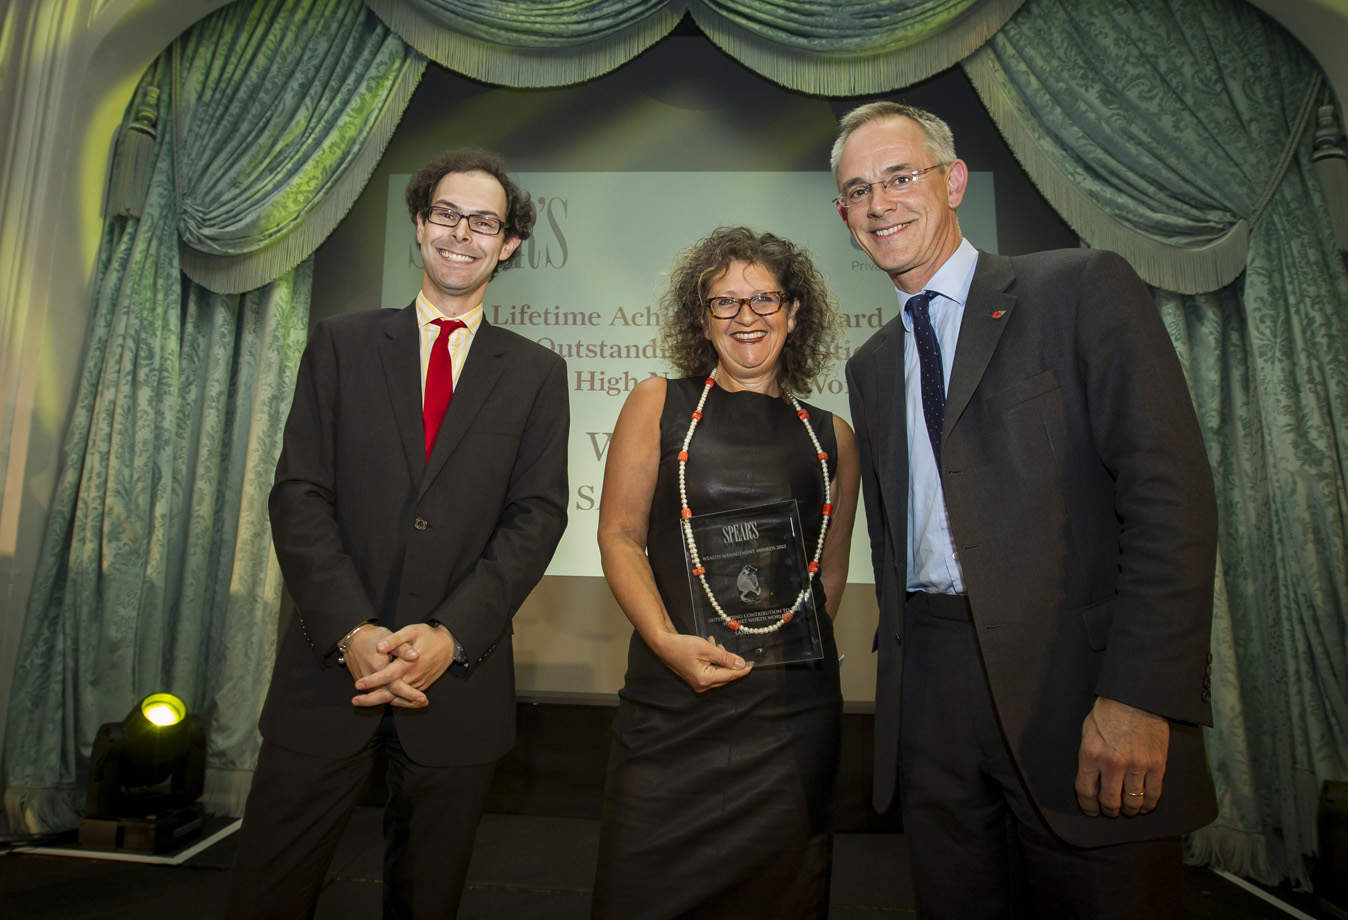 Lifetime Achievement: Editor Josh Spero, Sandra Davis (Mishcon de Reya), David Poole (sponsor, Citi Private Bank)